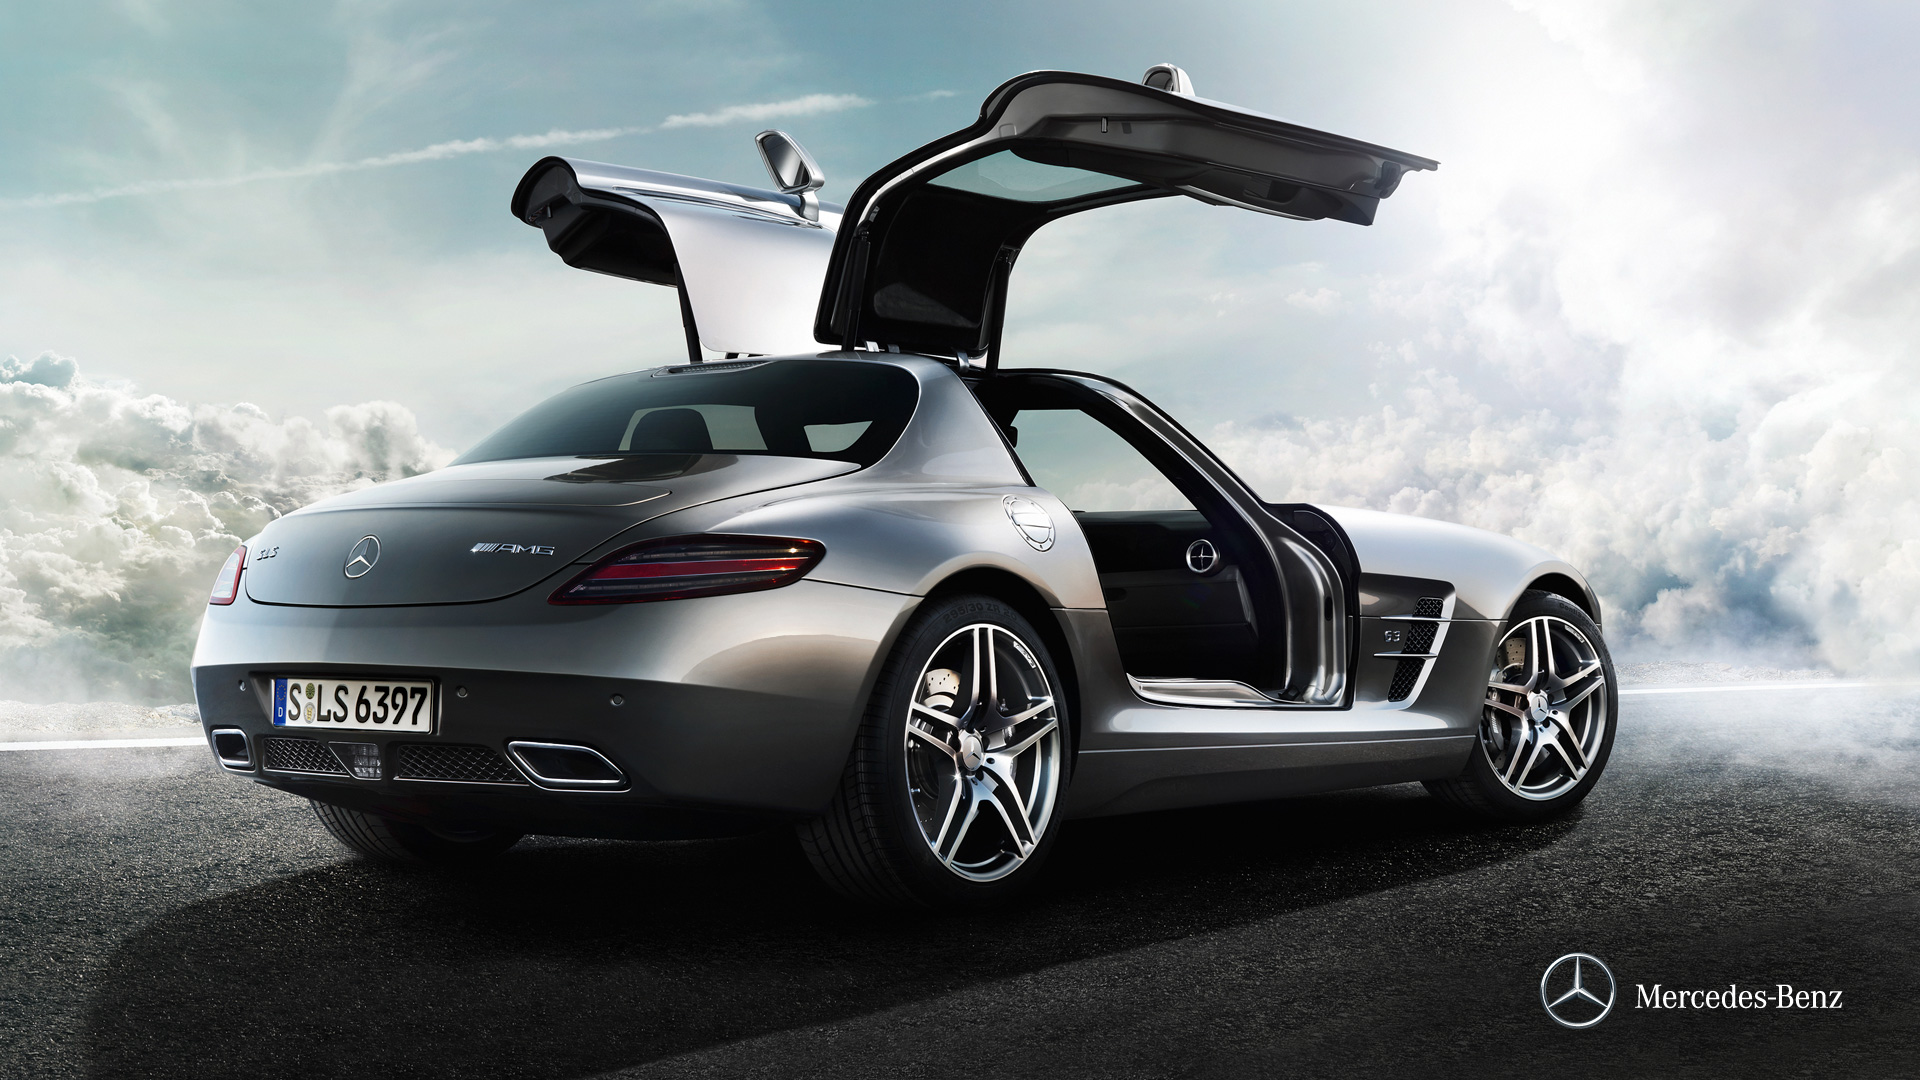 Mercedes SLS AMG Wallpaper 1920x1080